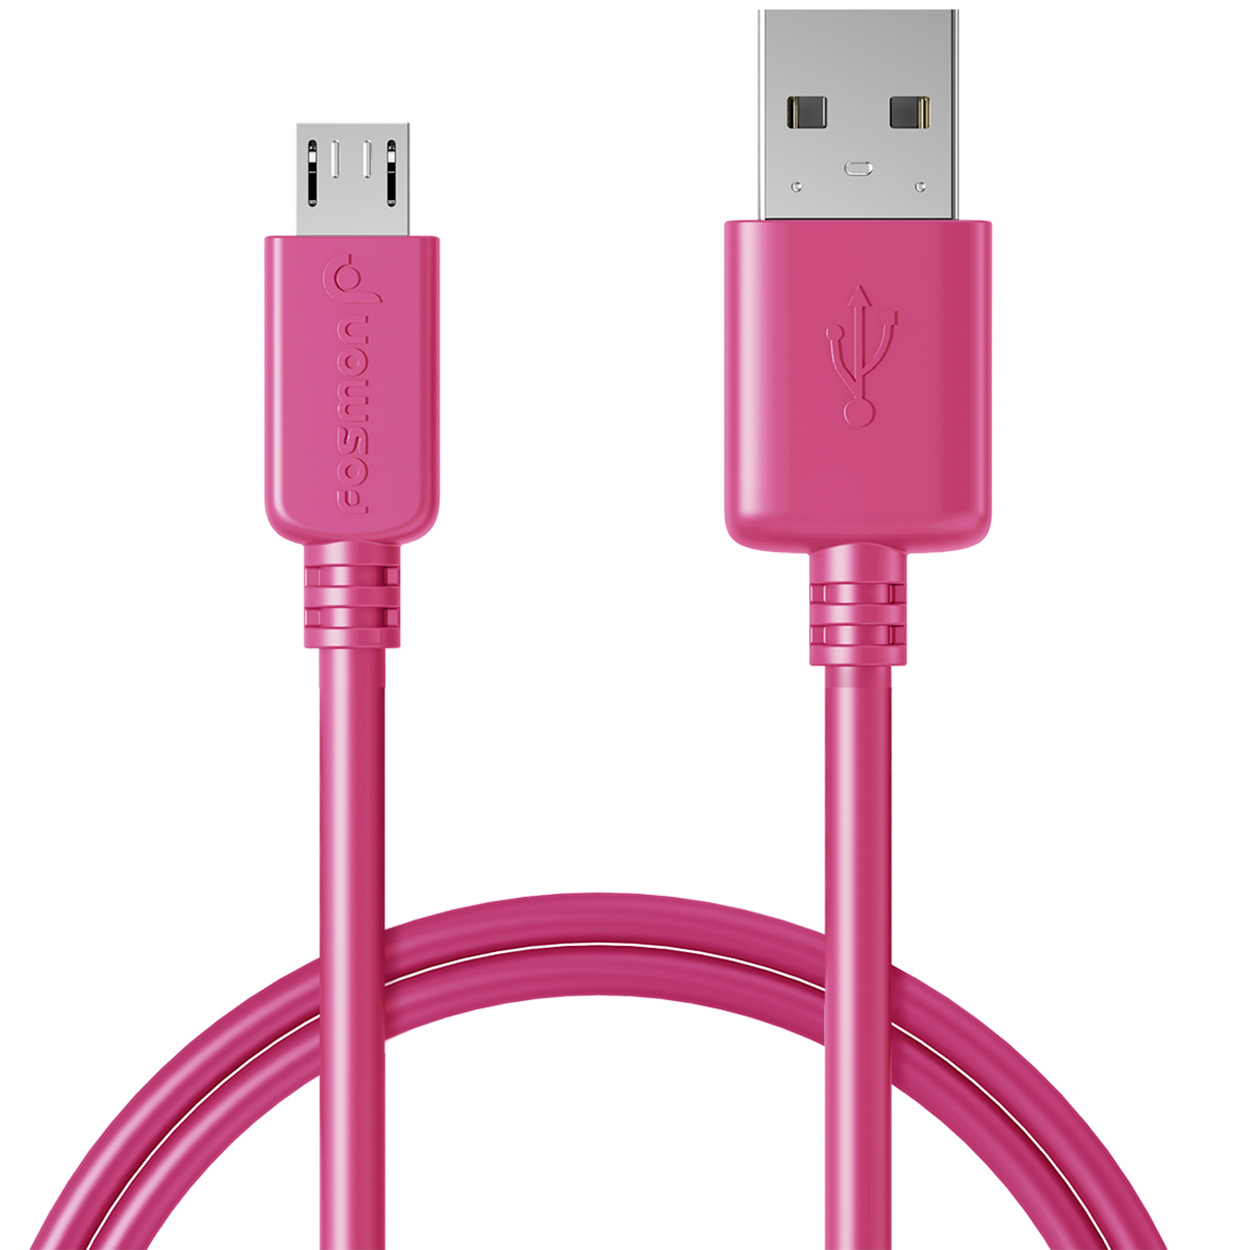 Fosmon Micro USB Cable, (3FT - Hot Pink) Ultra Durable (TPE Jacket & Housing) Sync Charge Cable for Samsung Galaxy S7 / S7 Edge / S6 / S5, Moto G/X/V, LG G4/G3, Nokia Series and More